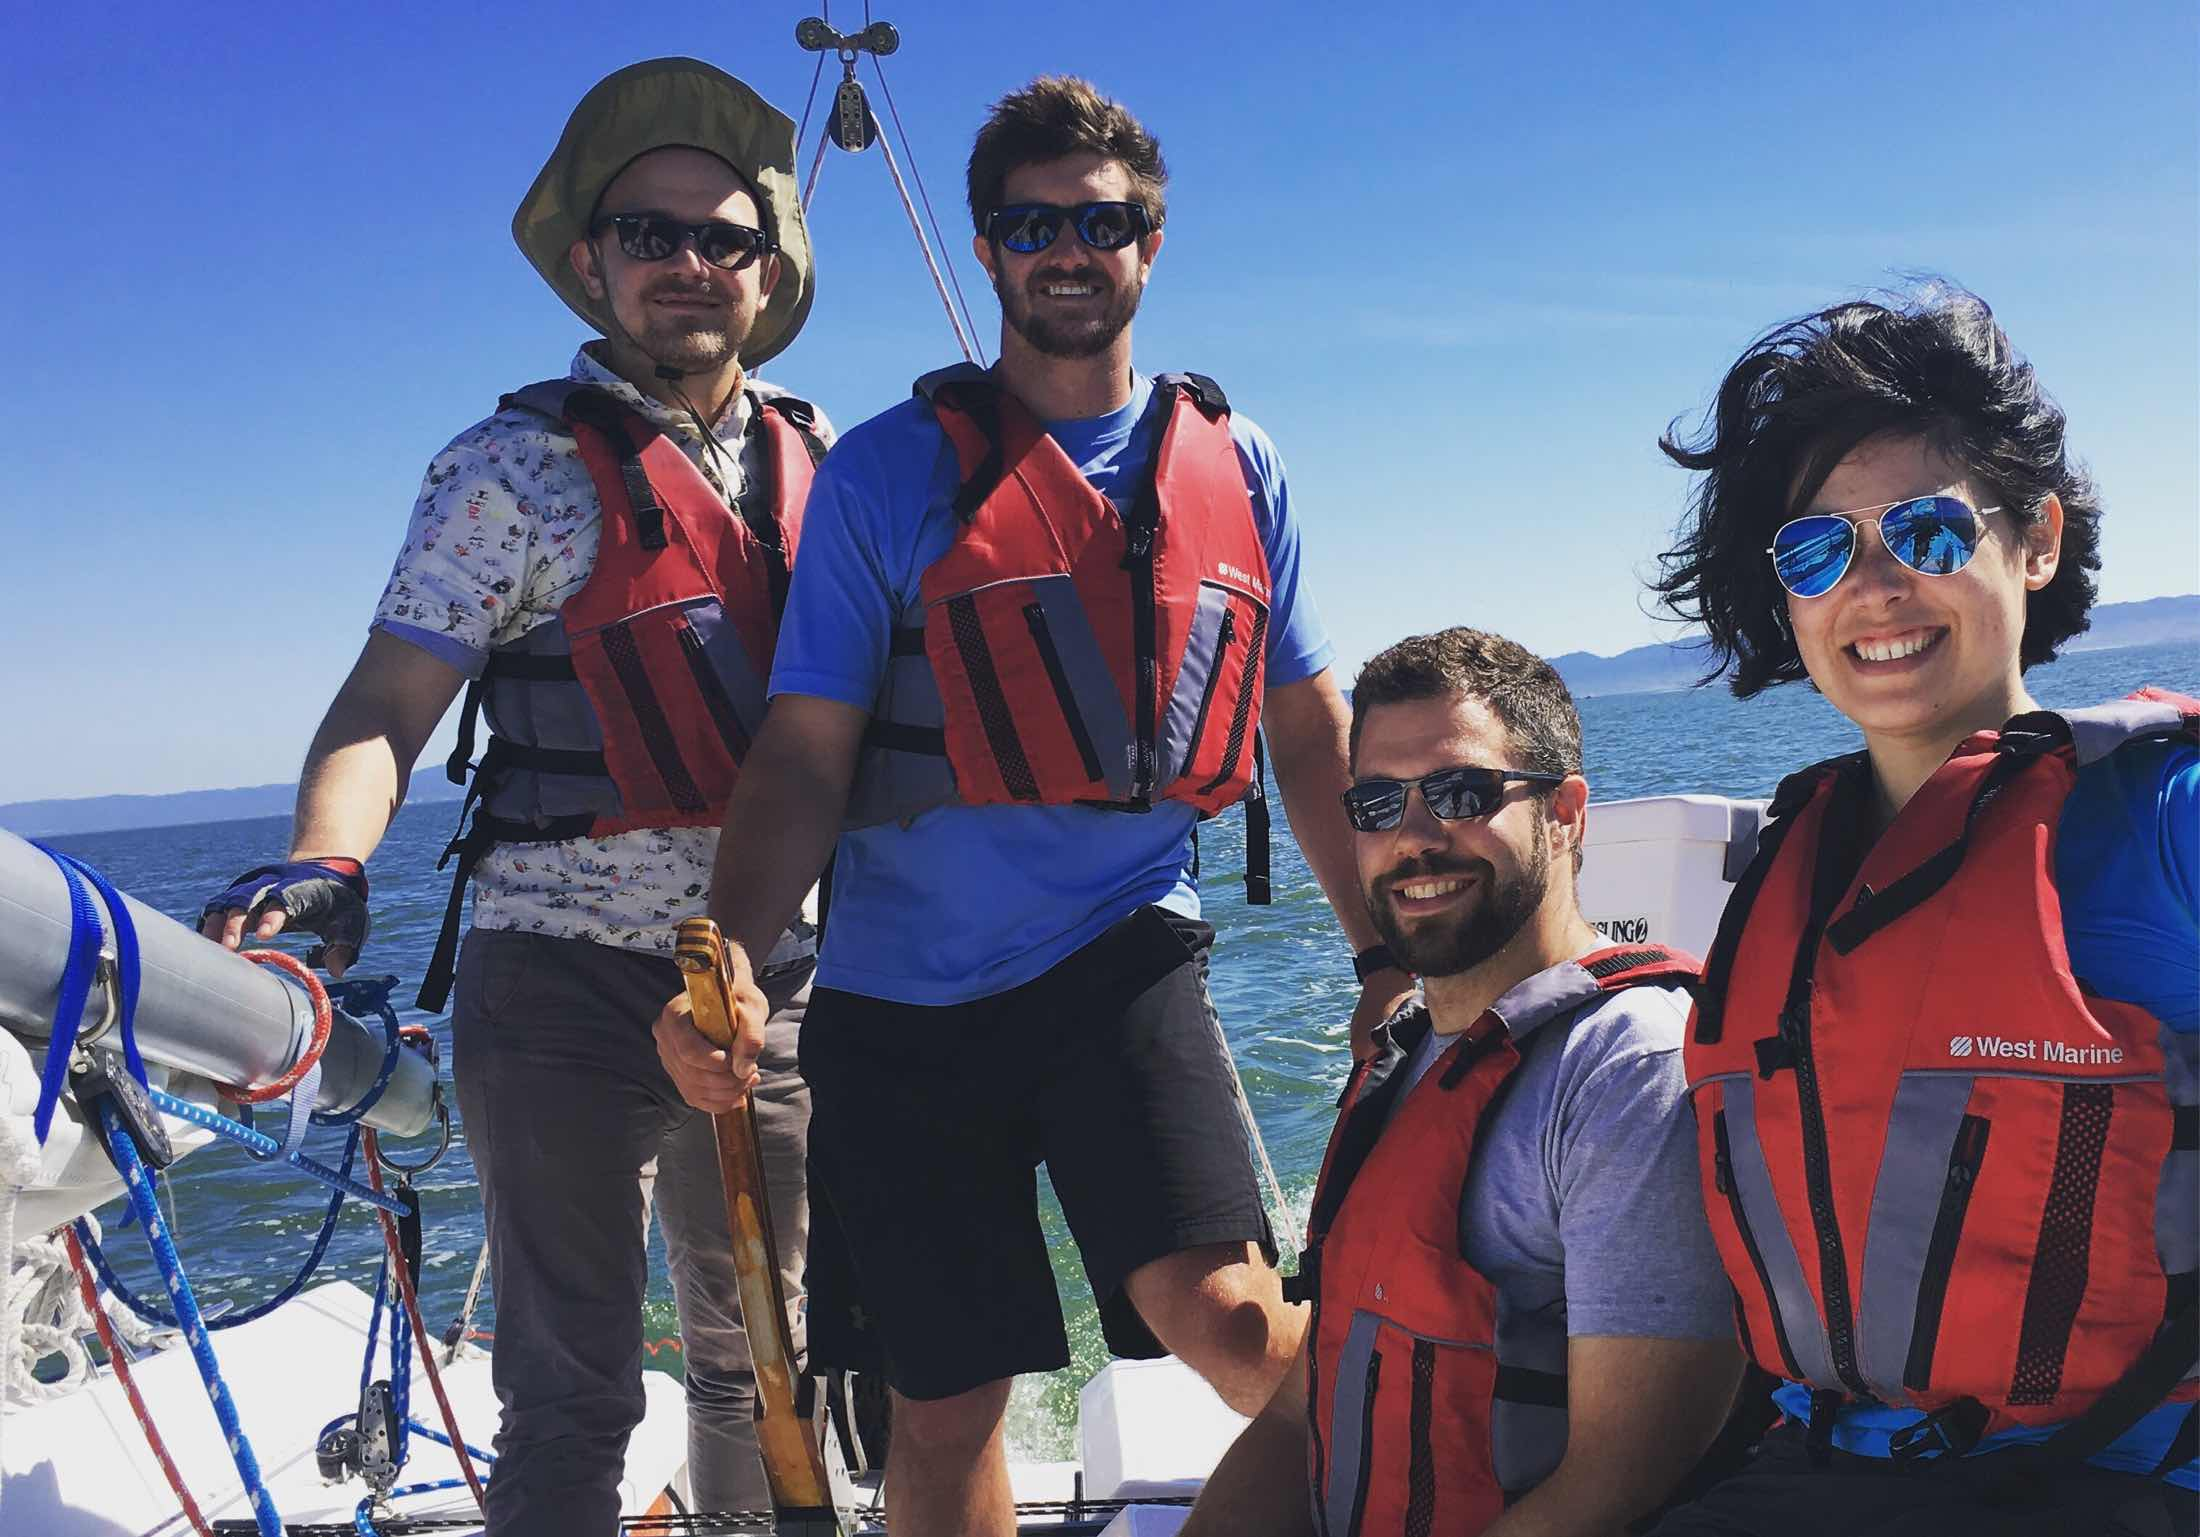 Saildrone team members participate in company-supported sailing lessons.